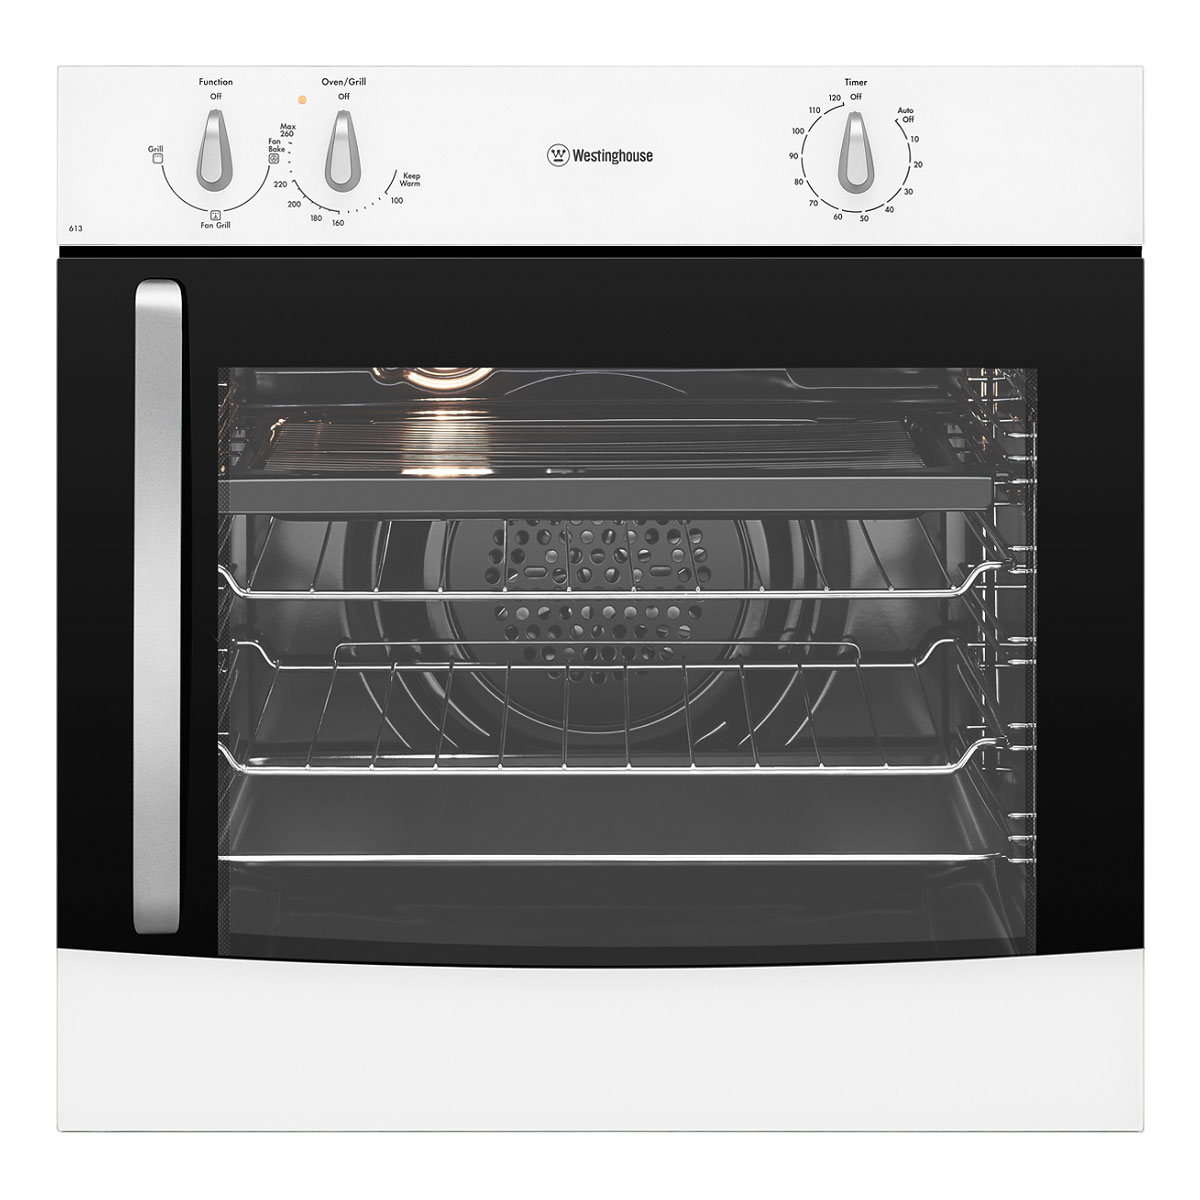 Westinghouse WVES613W-R 600mm Electric Wall Oven 26960